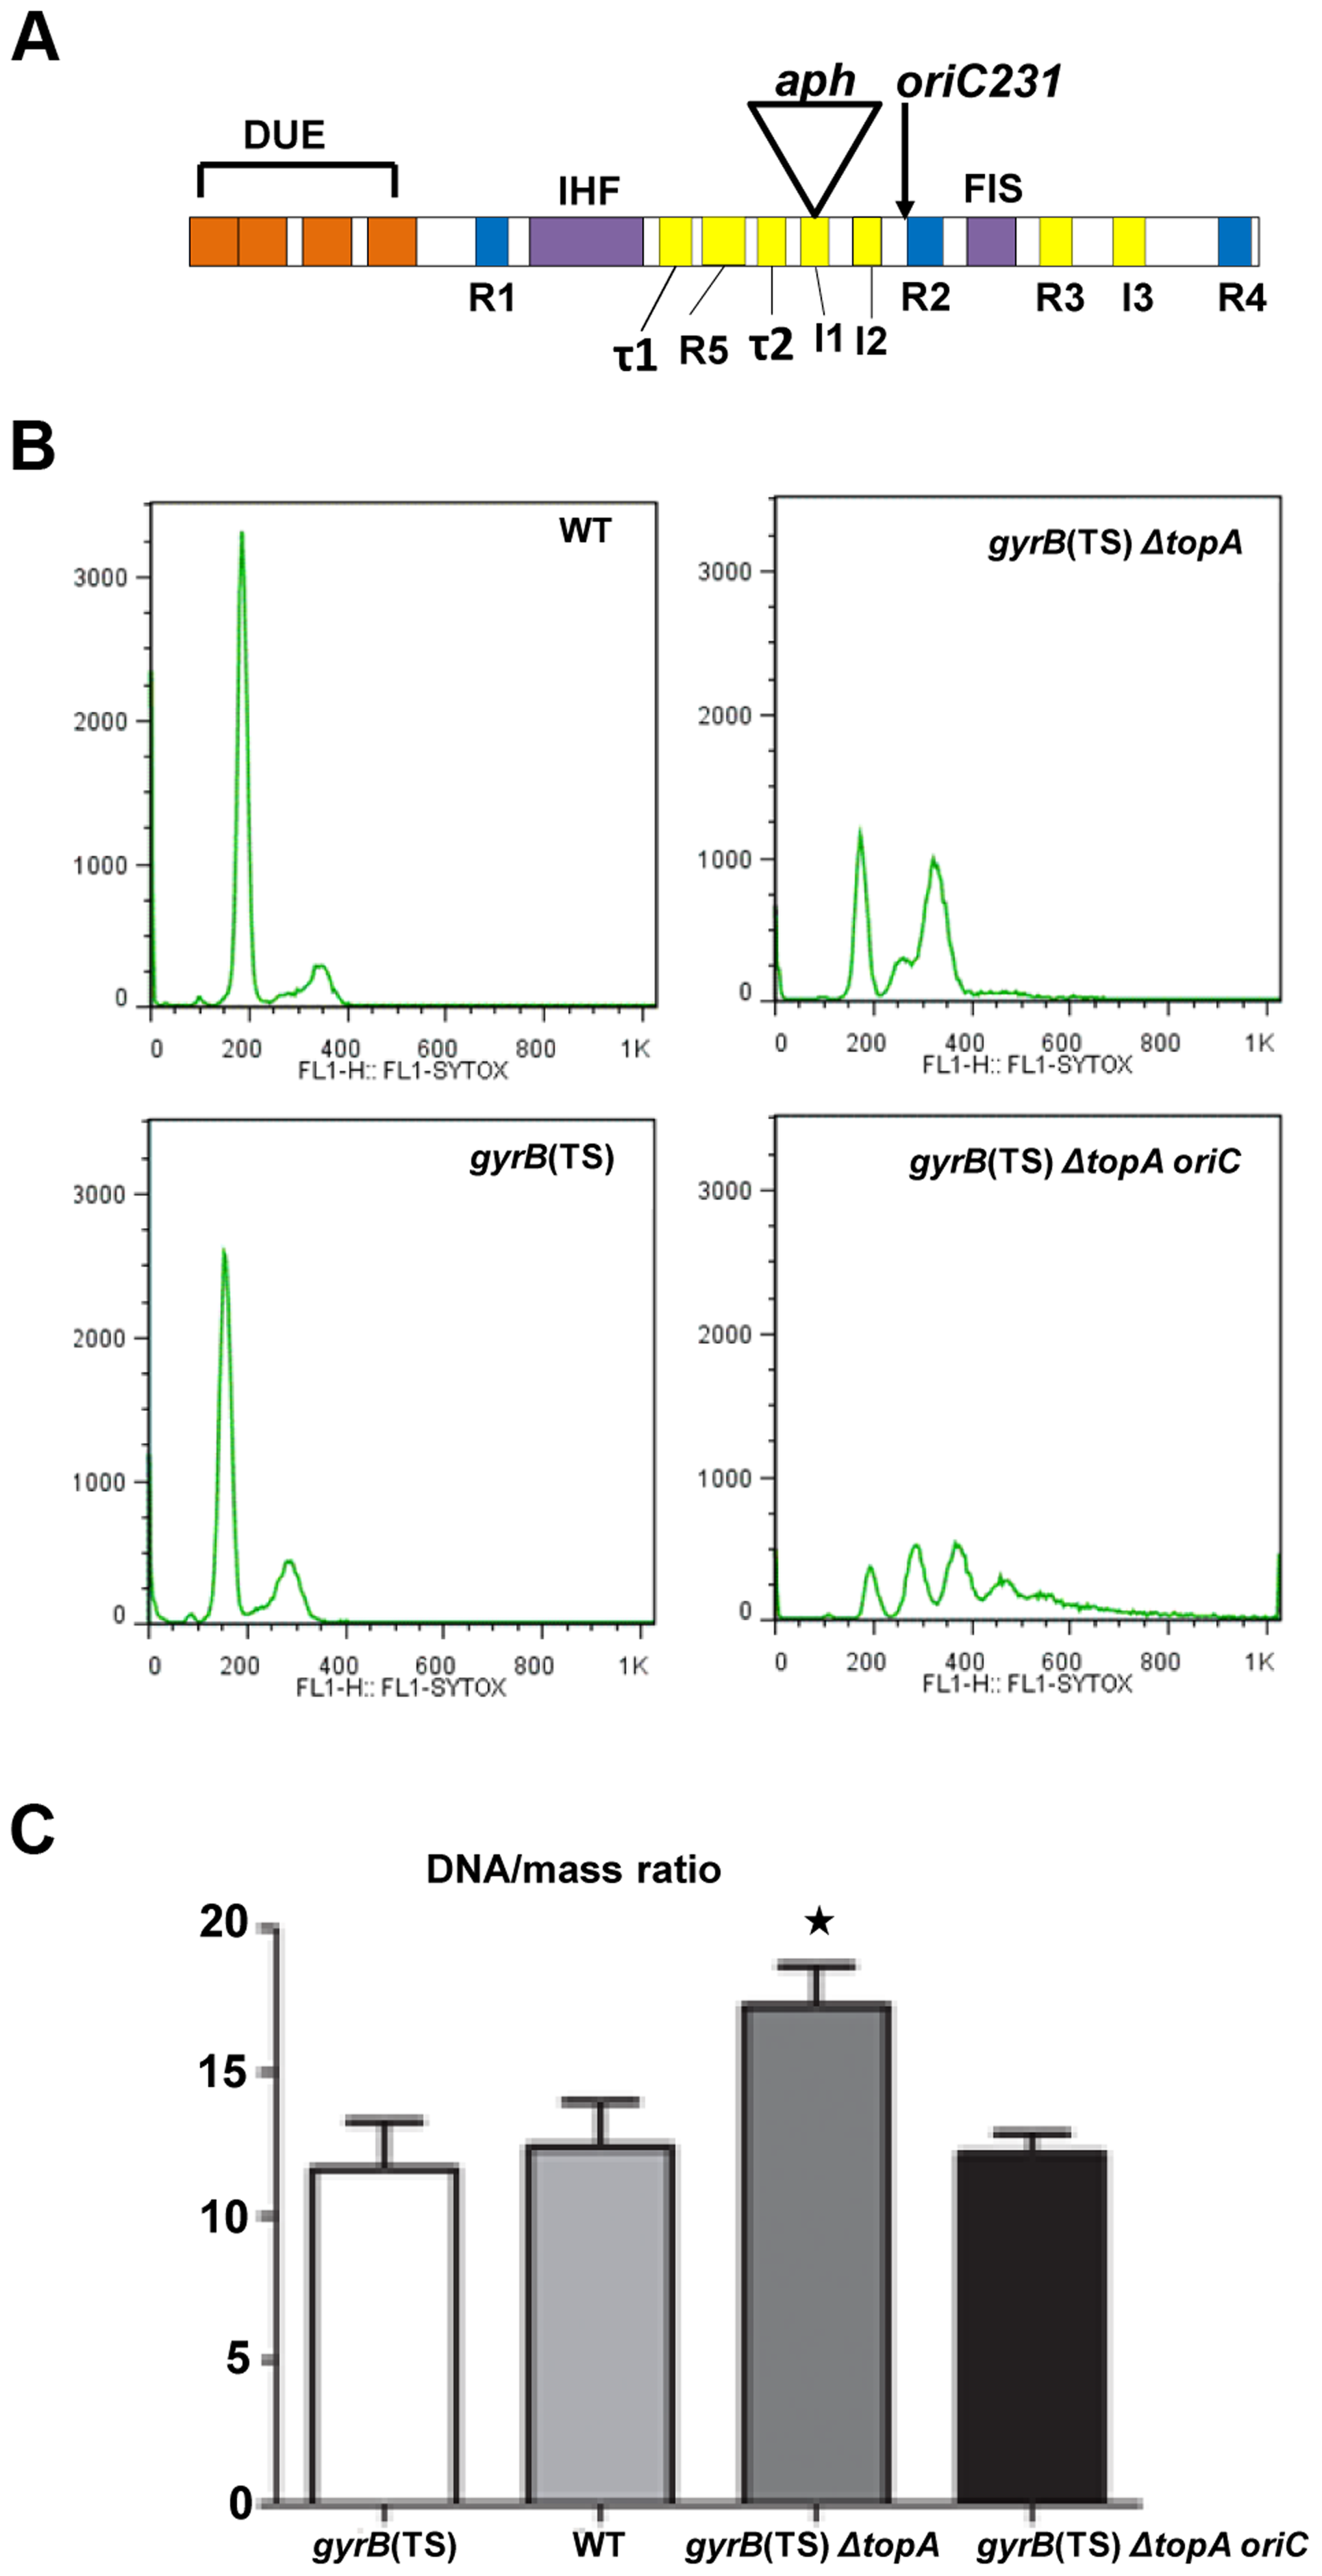 Replication initiation asynchrony and reduced DNA/mass ratio conferred by the <i>oriC15</i>::<i>aph</i> suppressor mutation.